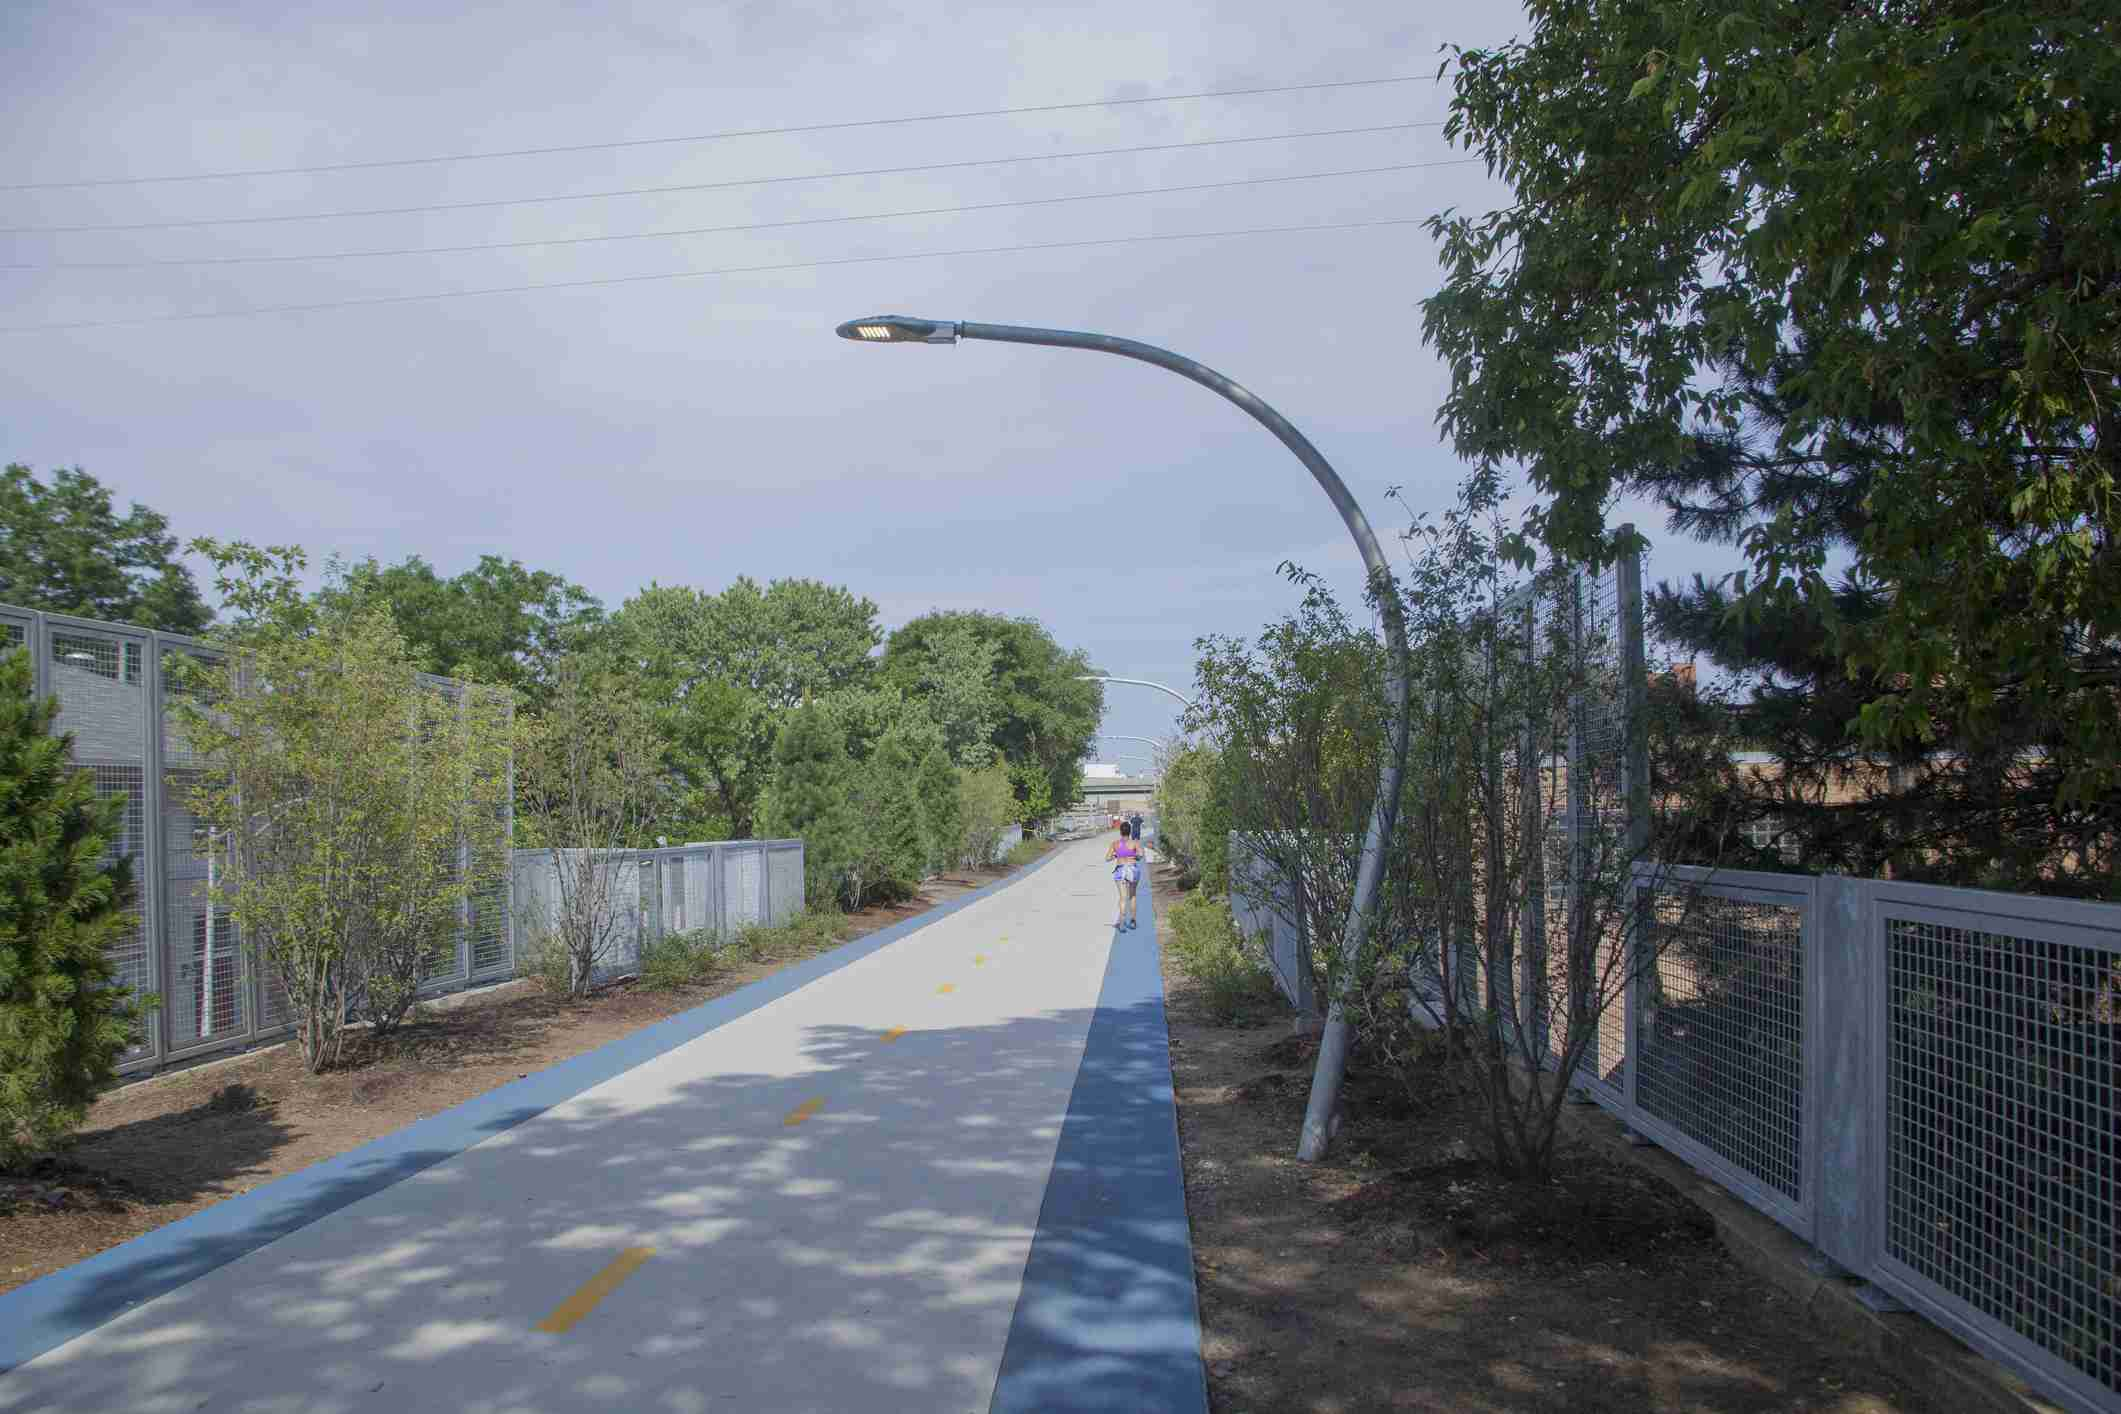 Bloomingdale trail a part of the 606 in Chicago, IL